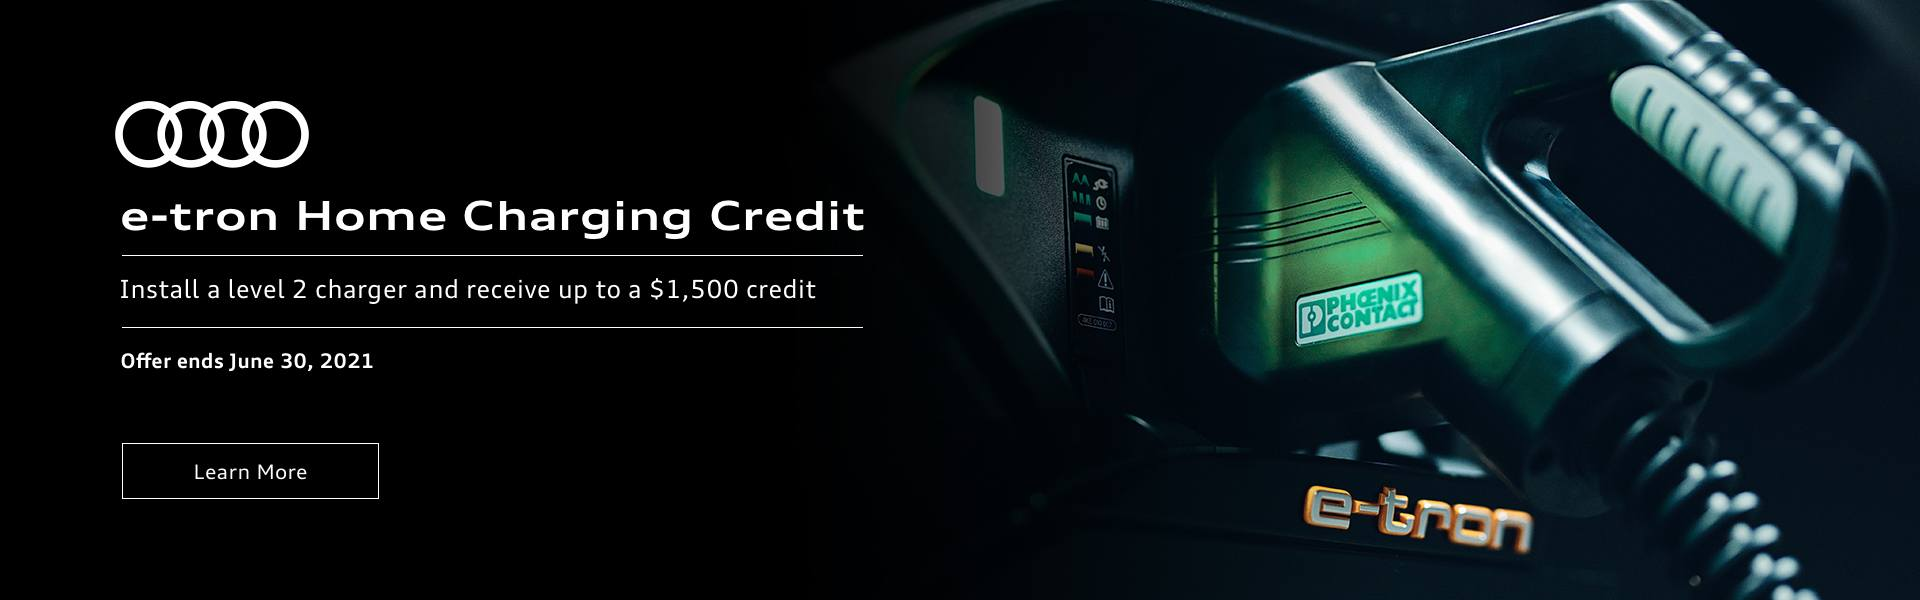 e-tron Home Charging Credit